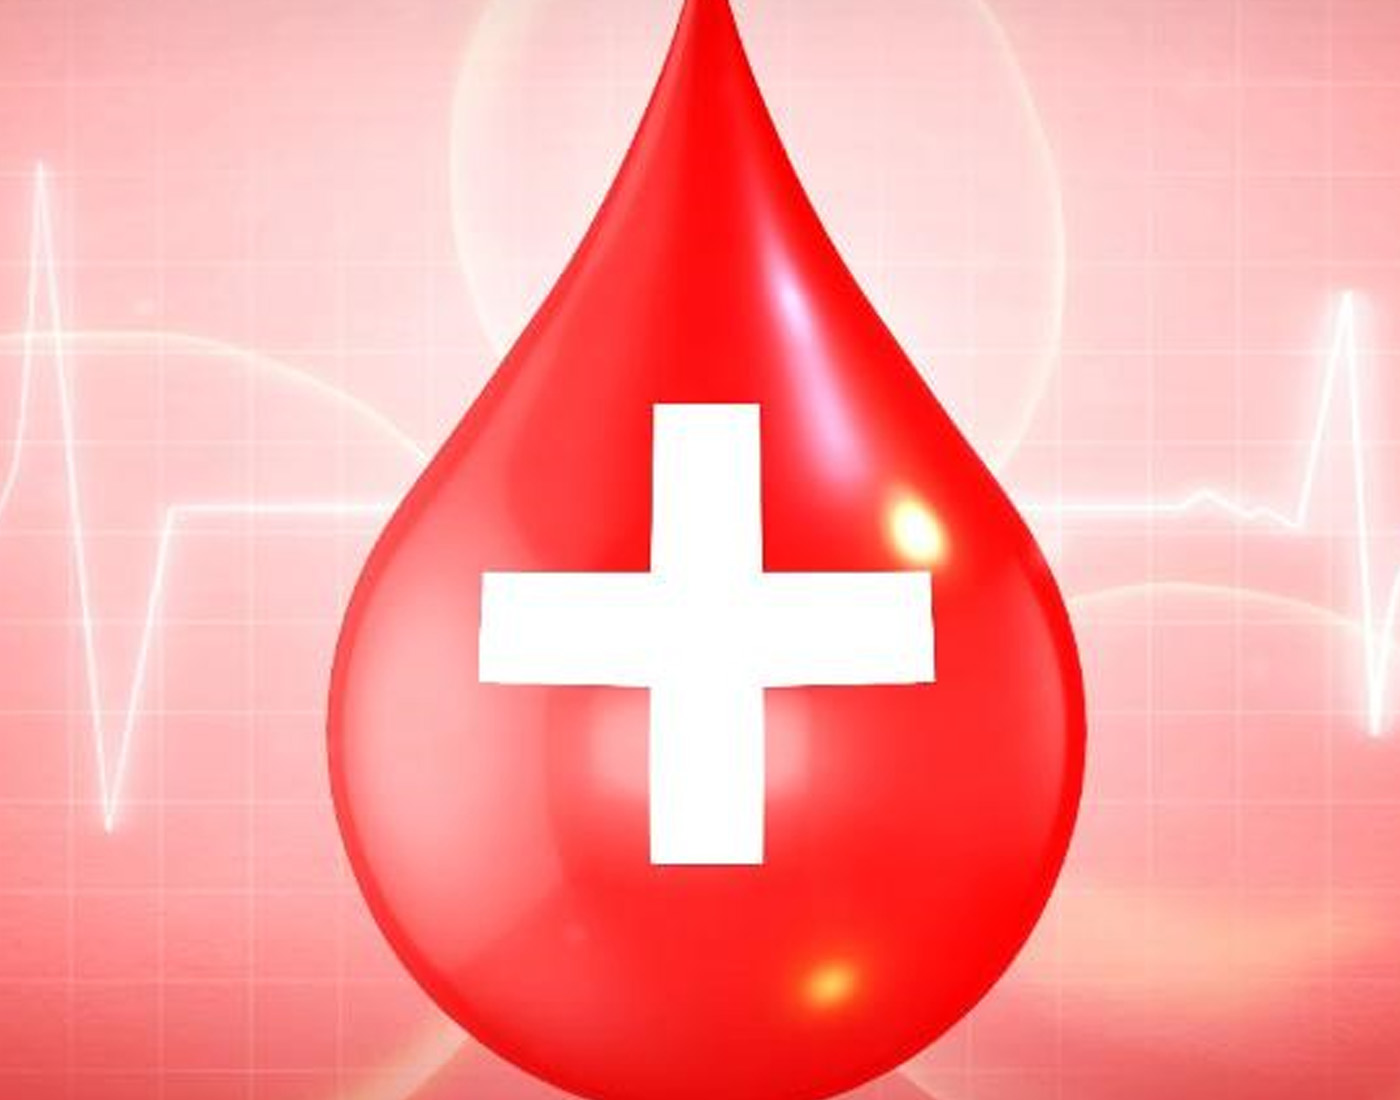 Community blood bank. Source: https://www.1011now.com/content/news/Nebraska-Community-Blood-Bank-issues-urgent-need-503348831.html